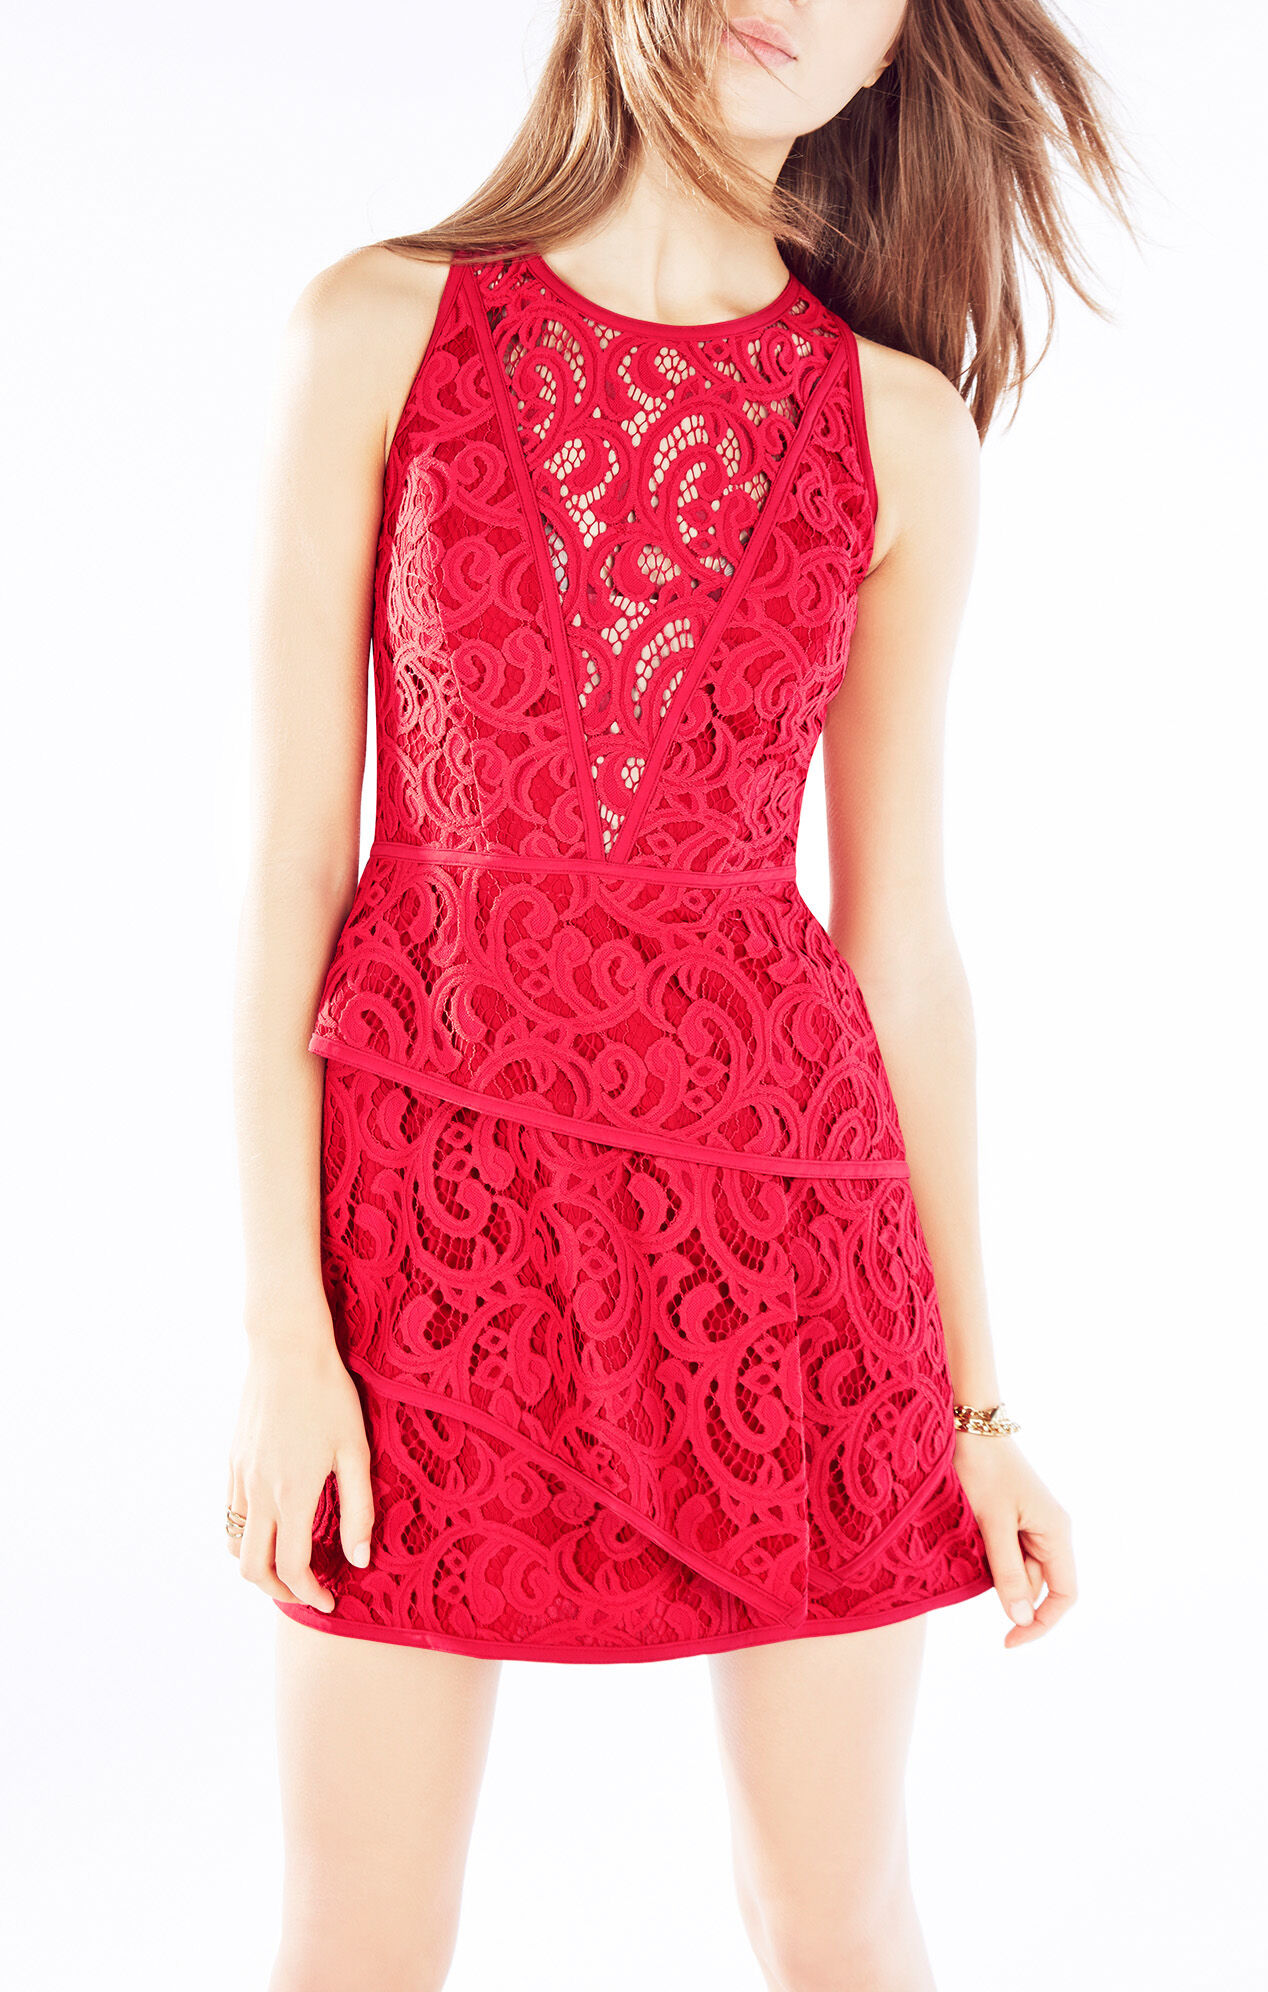 Hanah Scroll Lace Dress